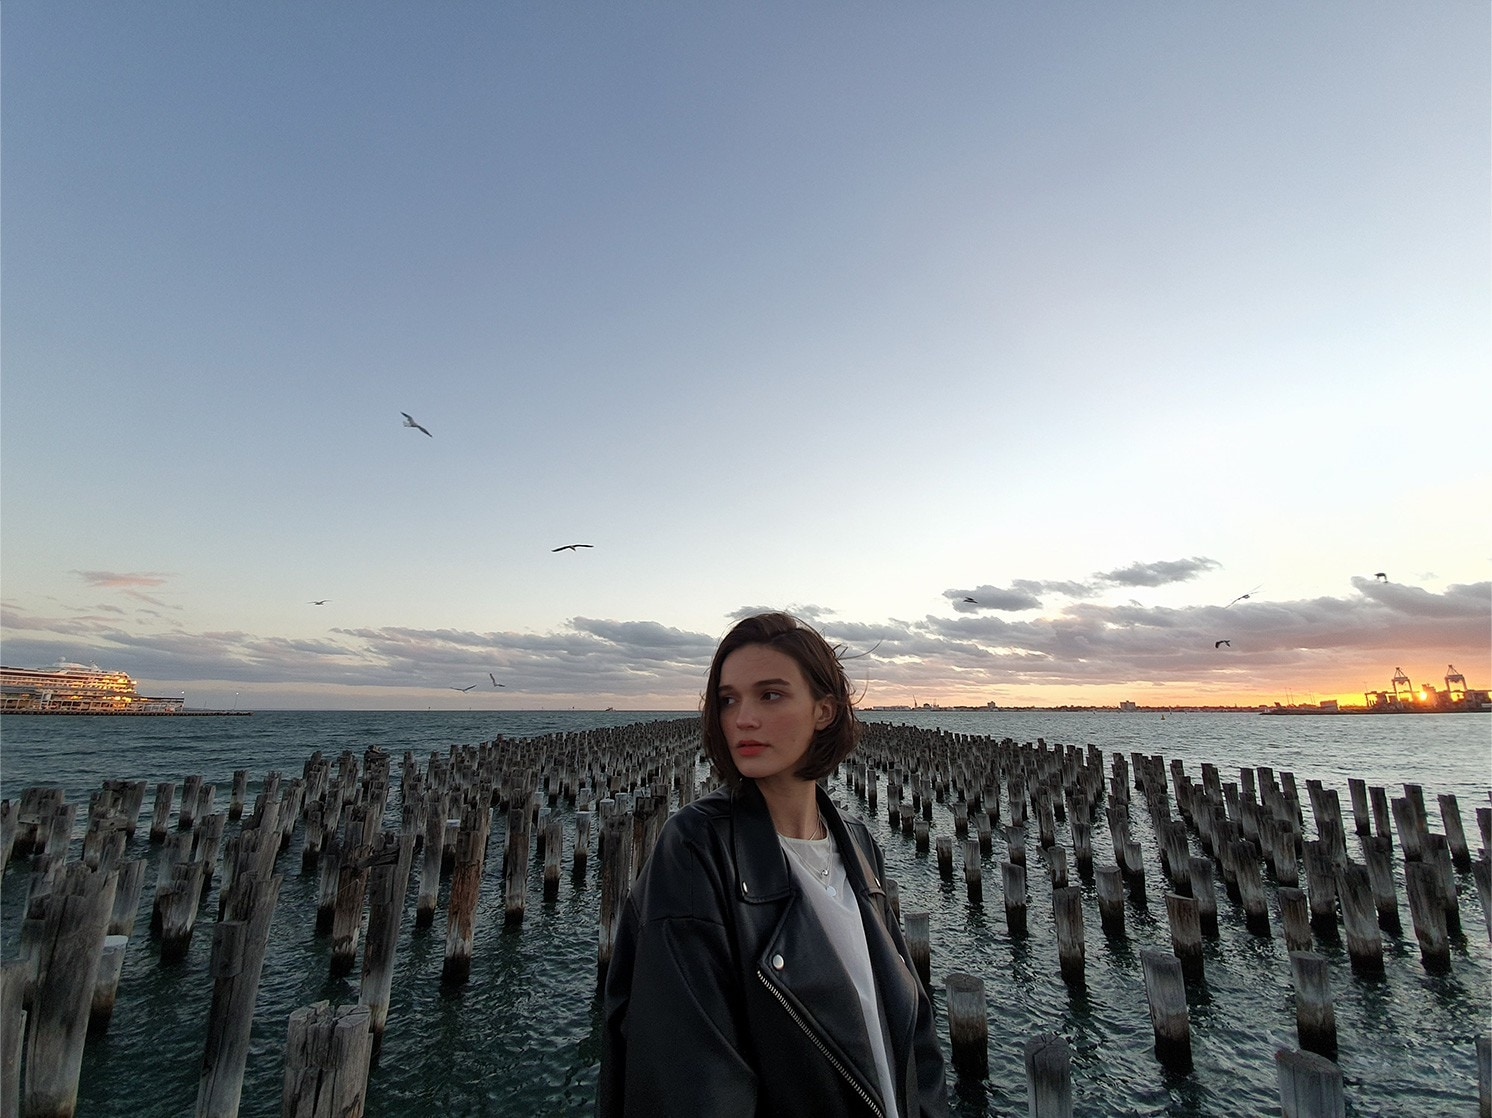 Photo captured by Galaxy S10 plus of a woman standing in front of several wooden posts in the sea at dusk. It pulls out to show more of the scene, with the Ultra Wide-angle Camera.